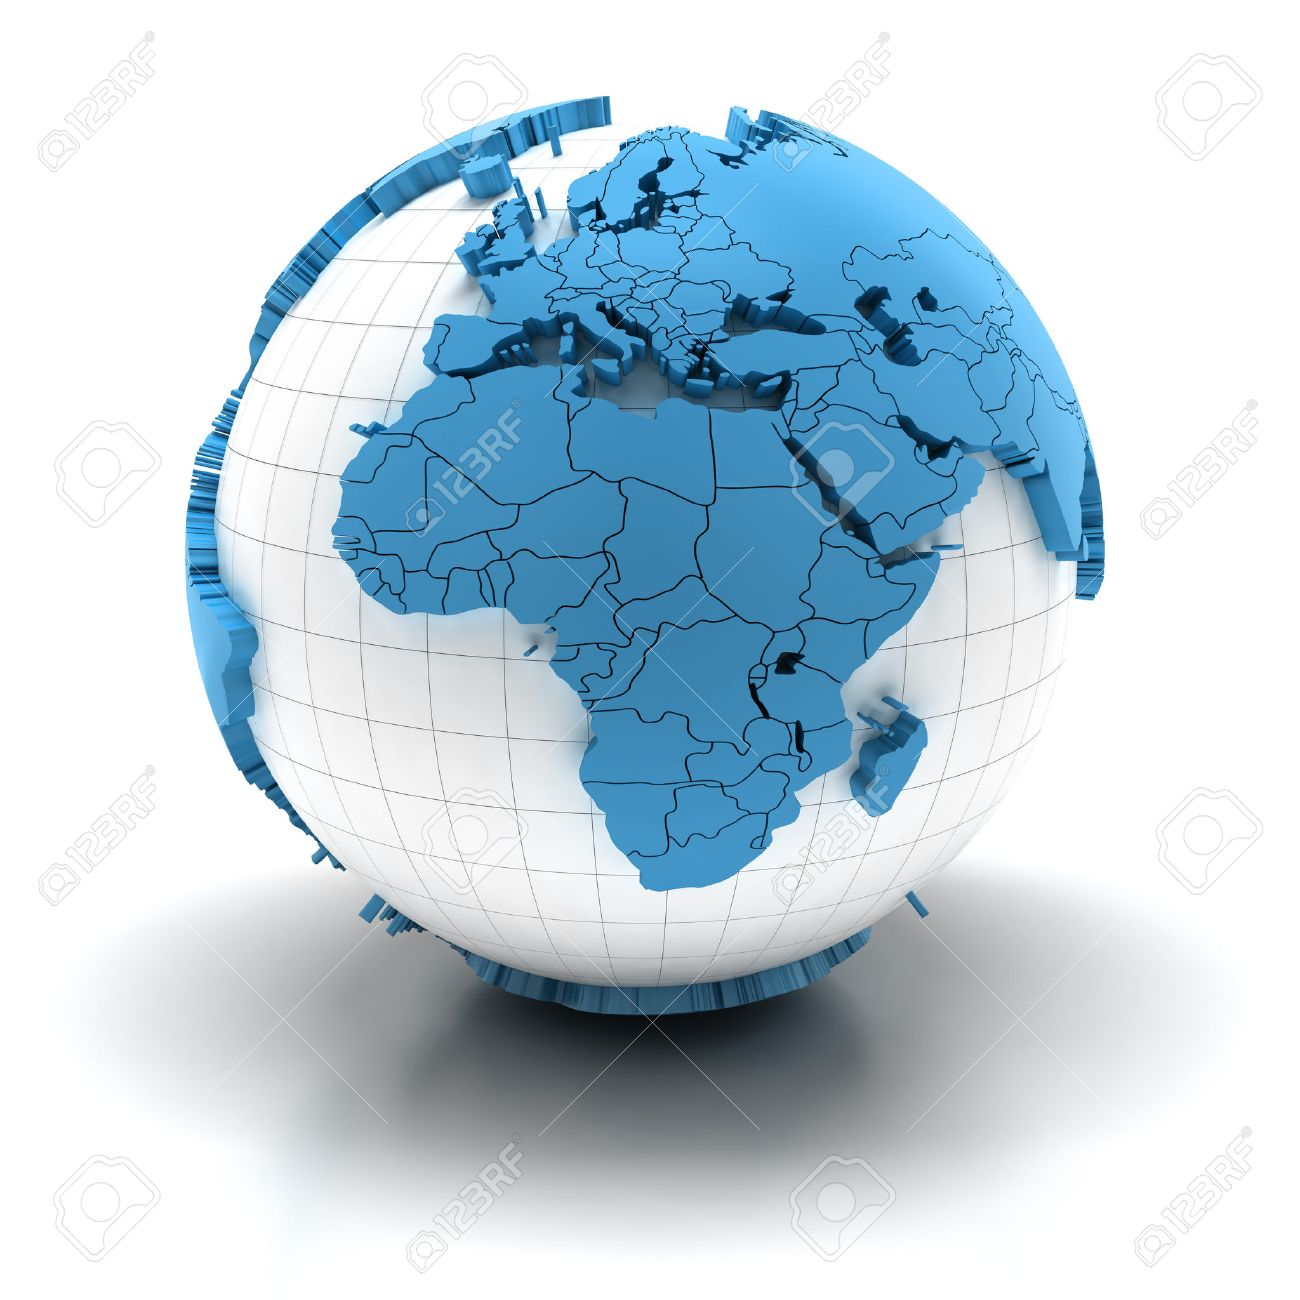 Globe with extruded continents and national borders, Europe and Africa region - 44129125